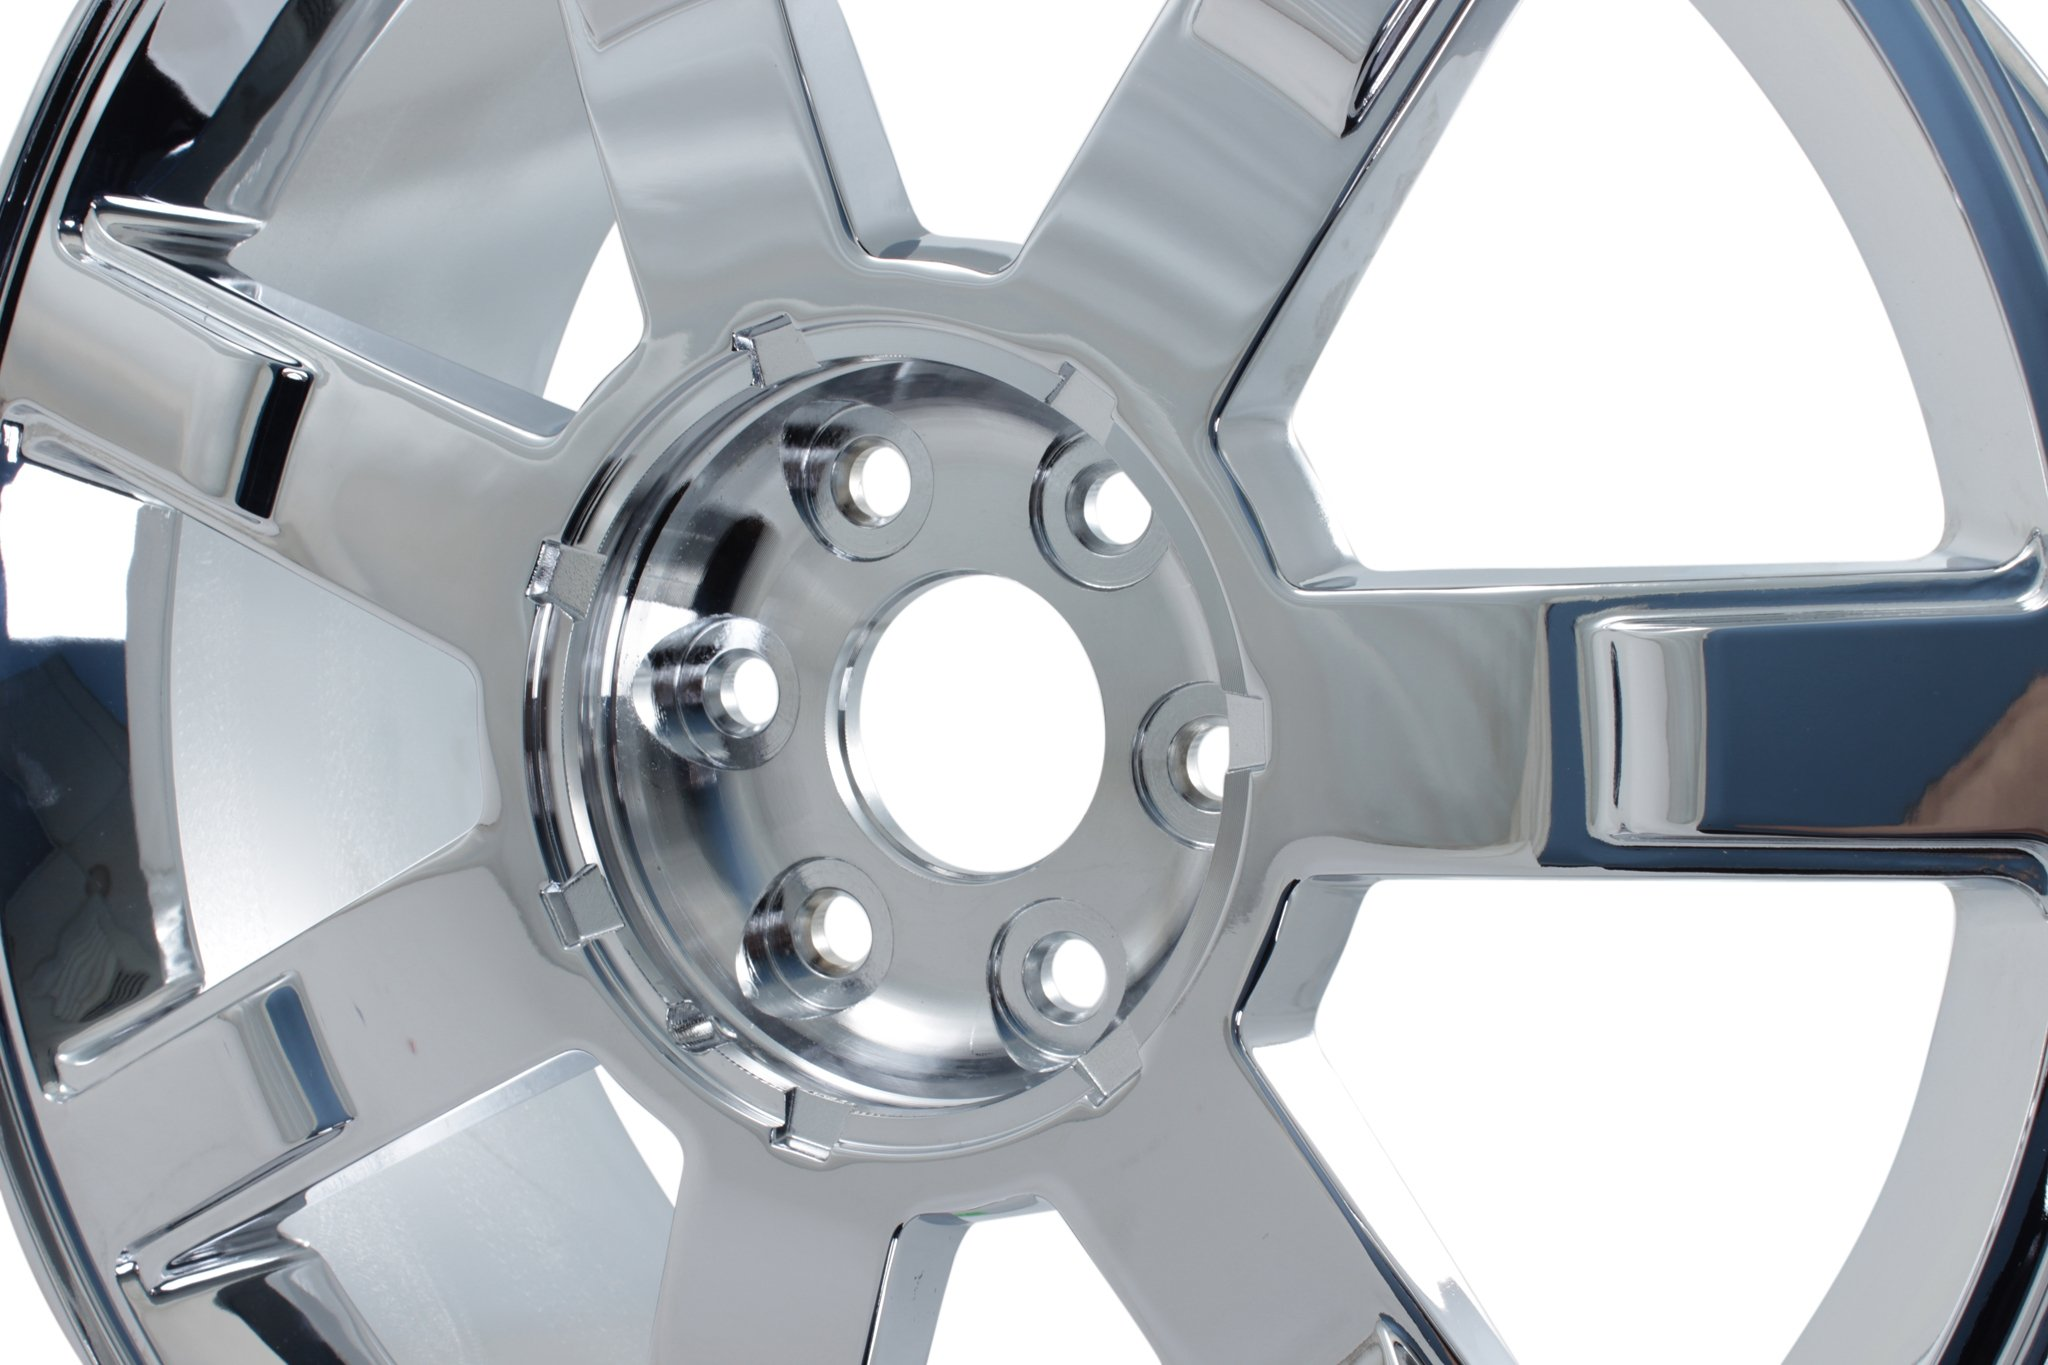 New 22'' x 9'' Replacement Wheel for Cadillac Escalade 2007-2013 Rim Chrome 5309 by Cadillac (Image #4)